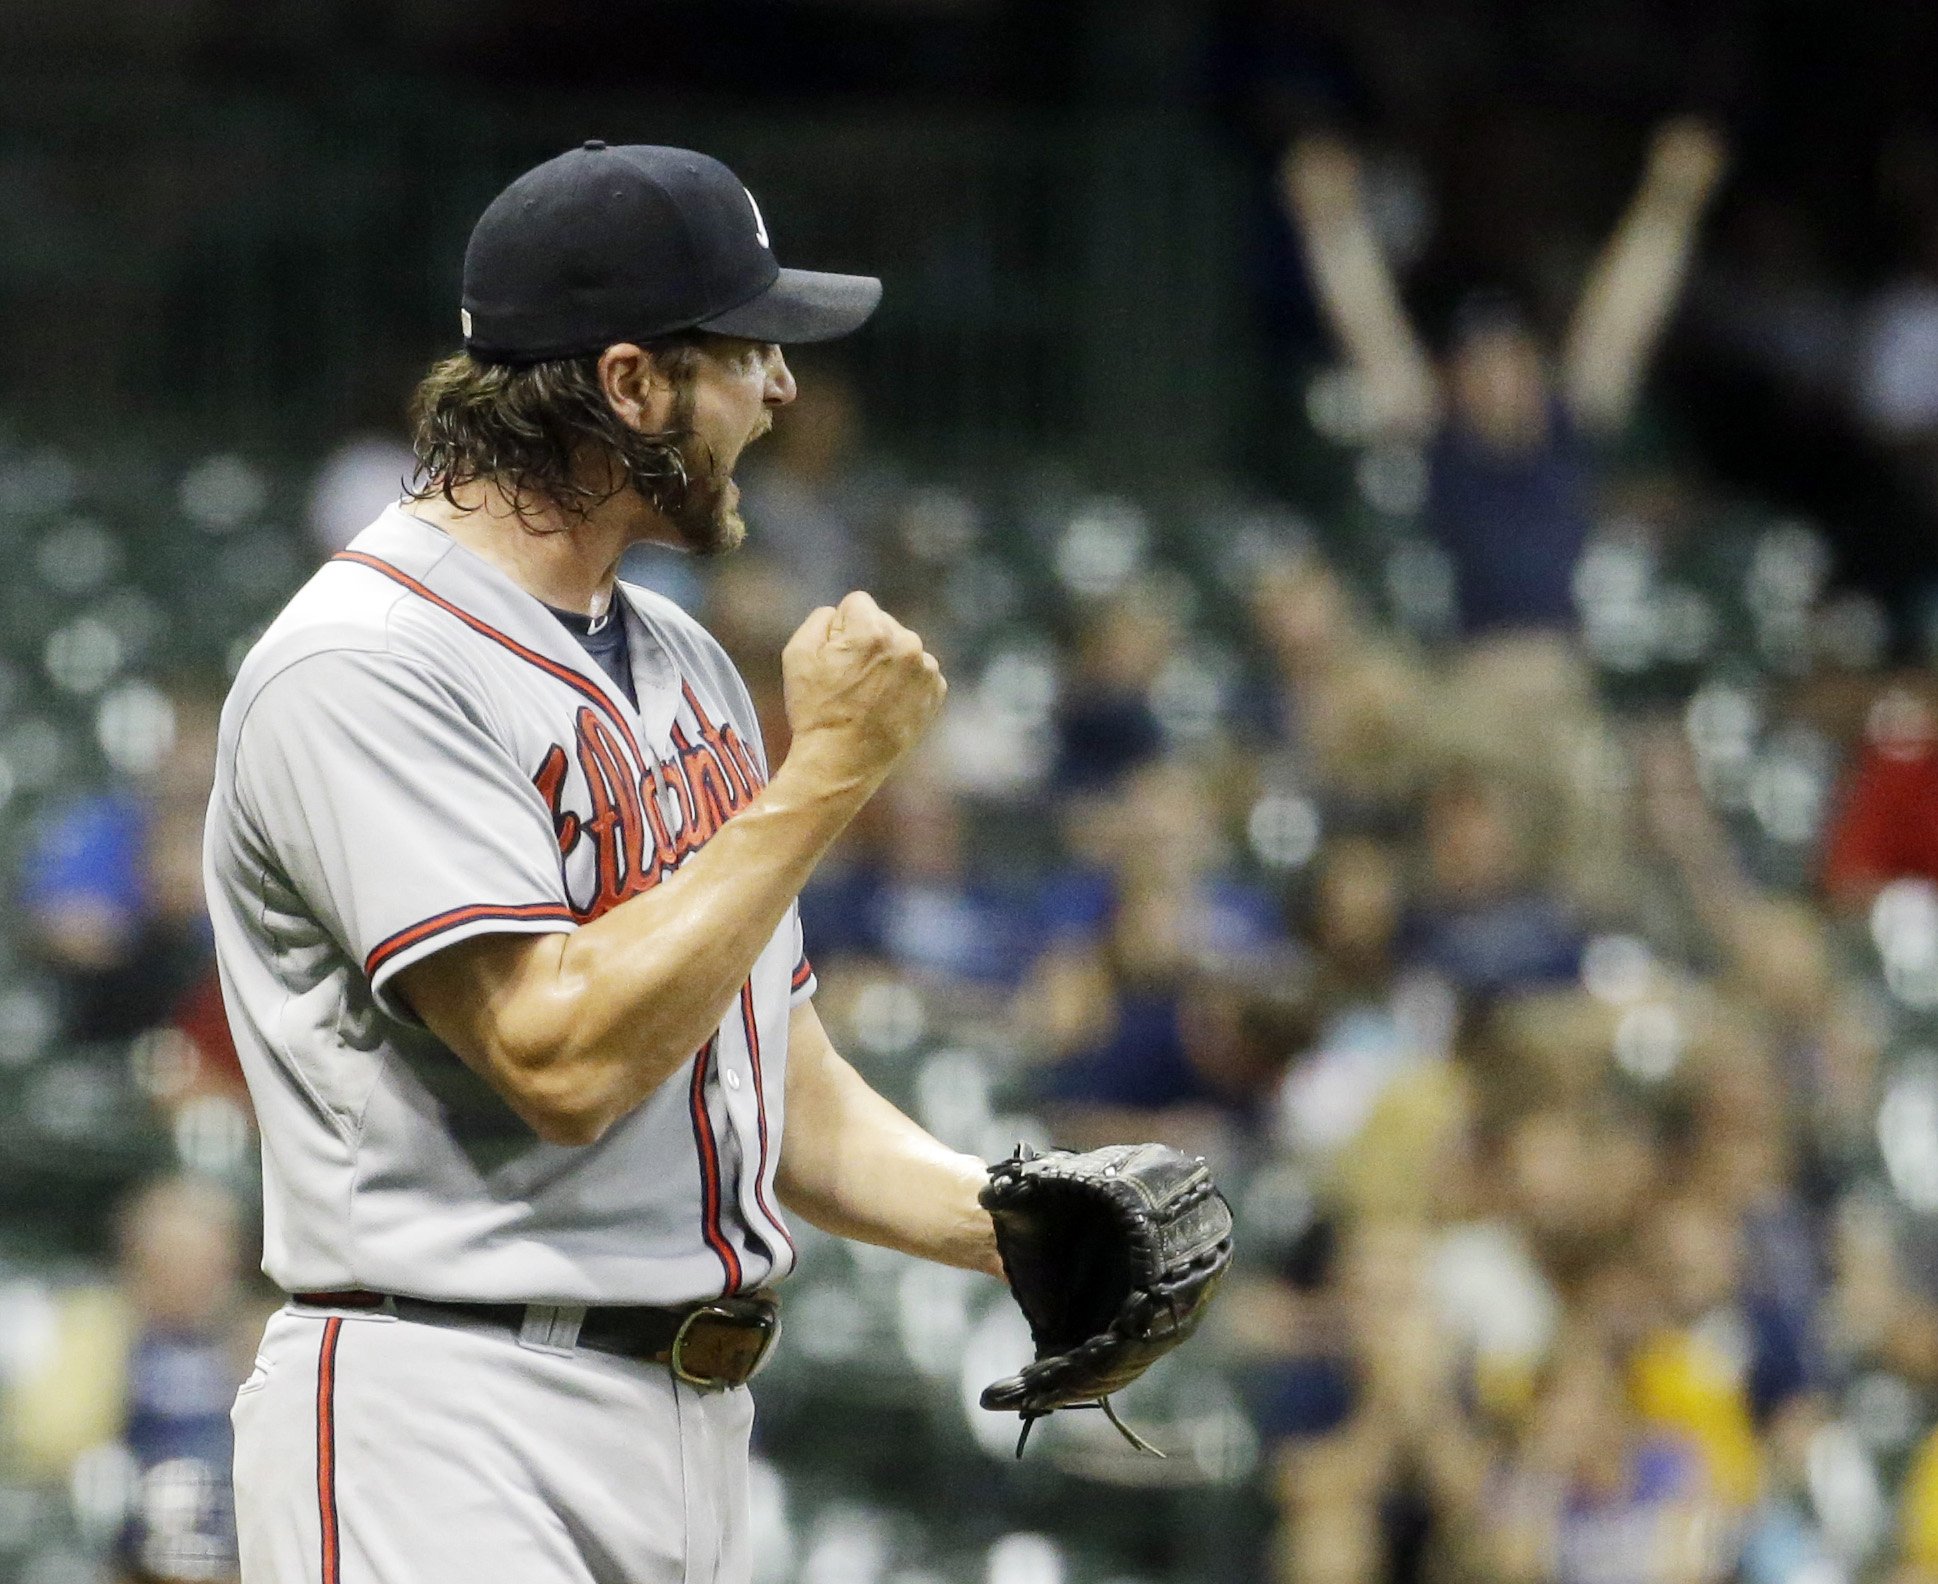 Atlanta Braves relief pitcher Jason Grilli reacts after getting Milwaukee Brewers' Jonathan Lucroy to ground out and end the ninth inning of a baseball game Monday, July 6, 2015, in Milwaukee. The Braves won 5-3. (AP Photo/Morry Gash)